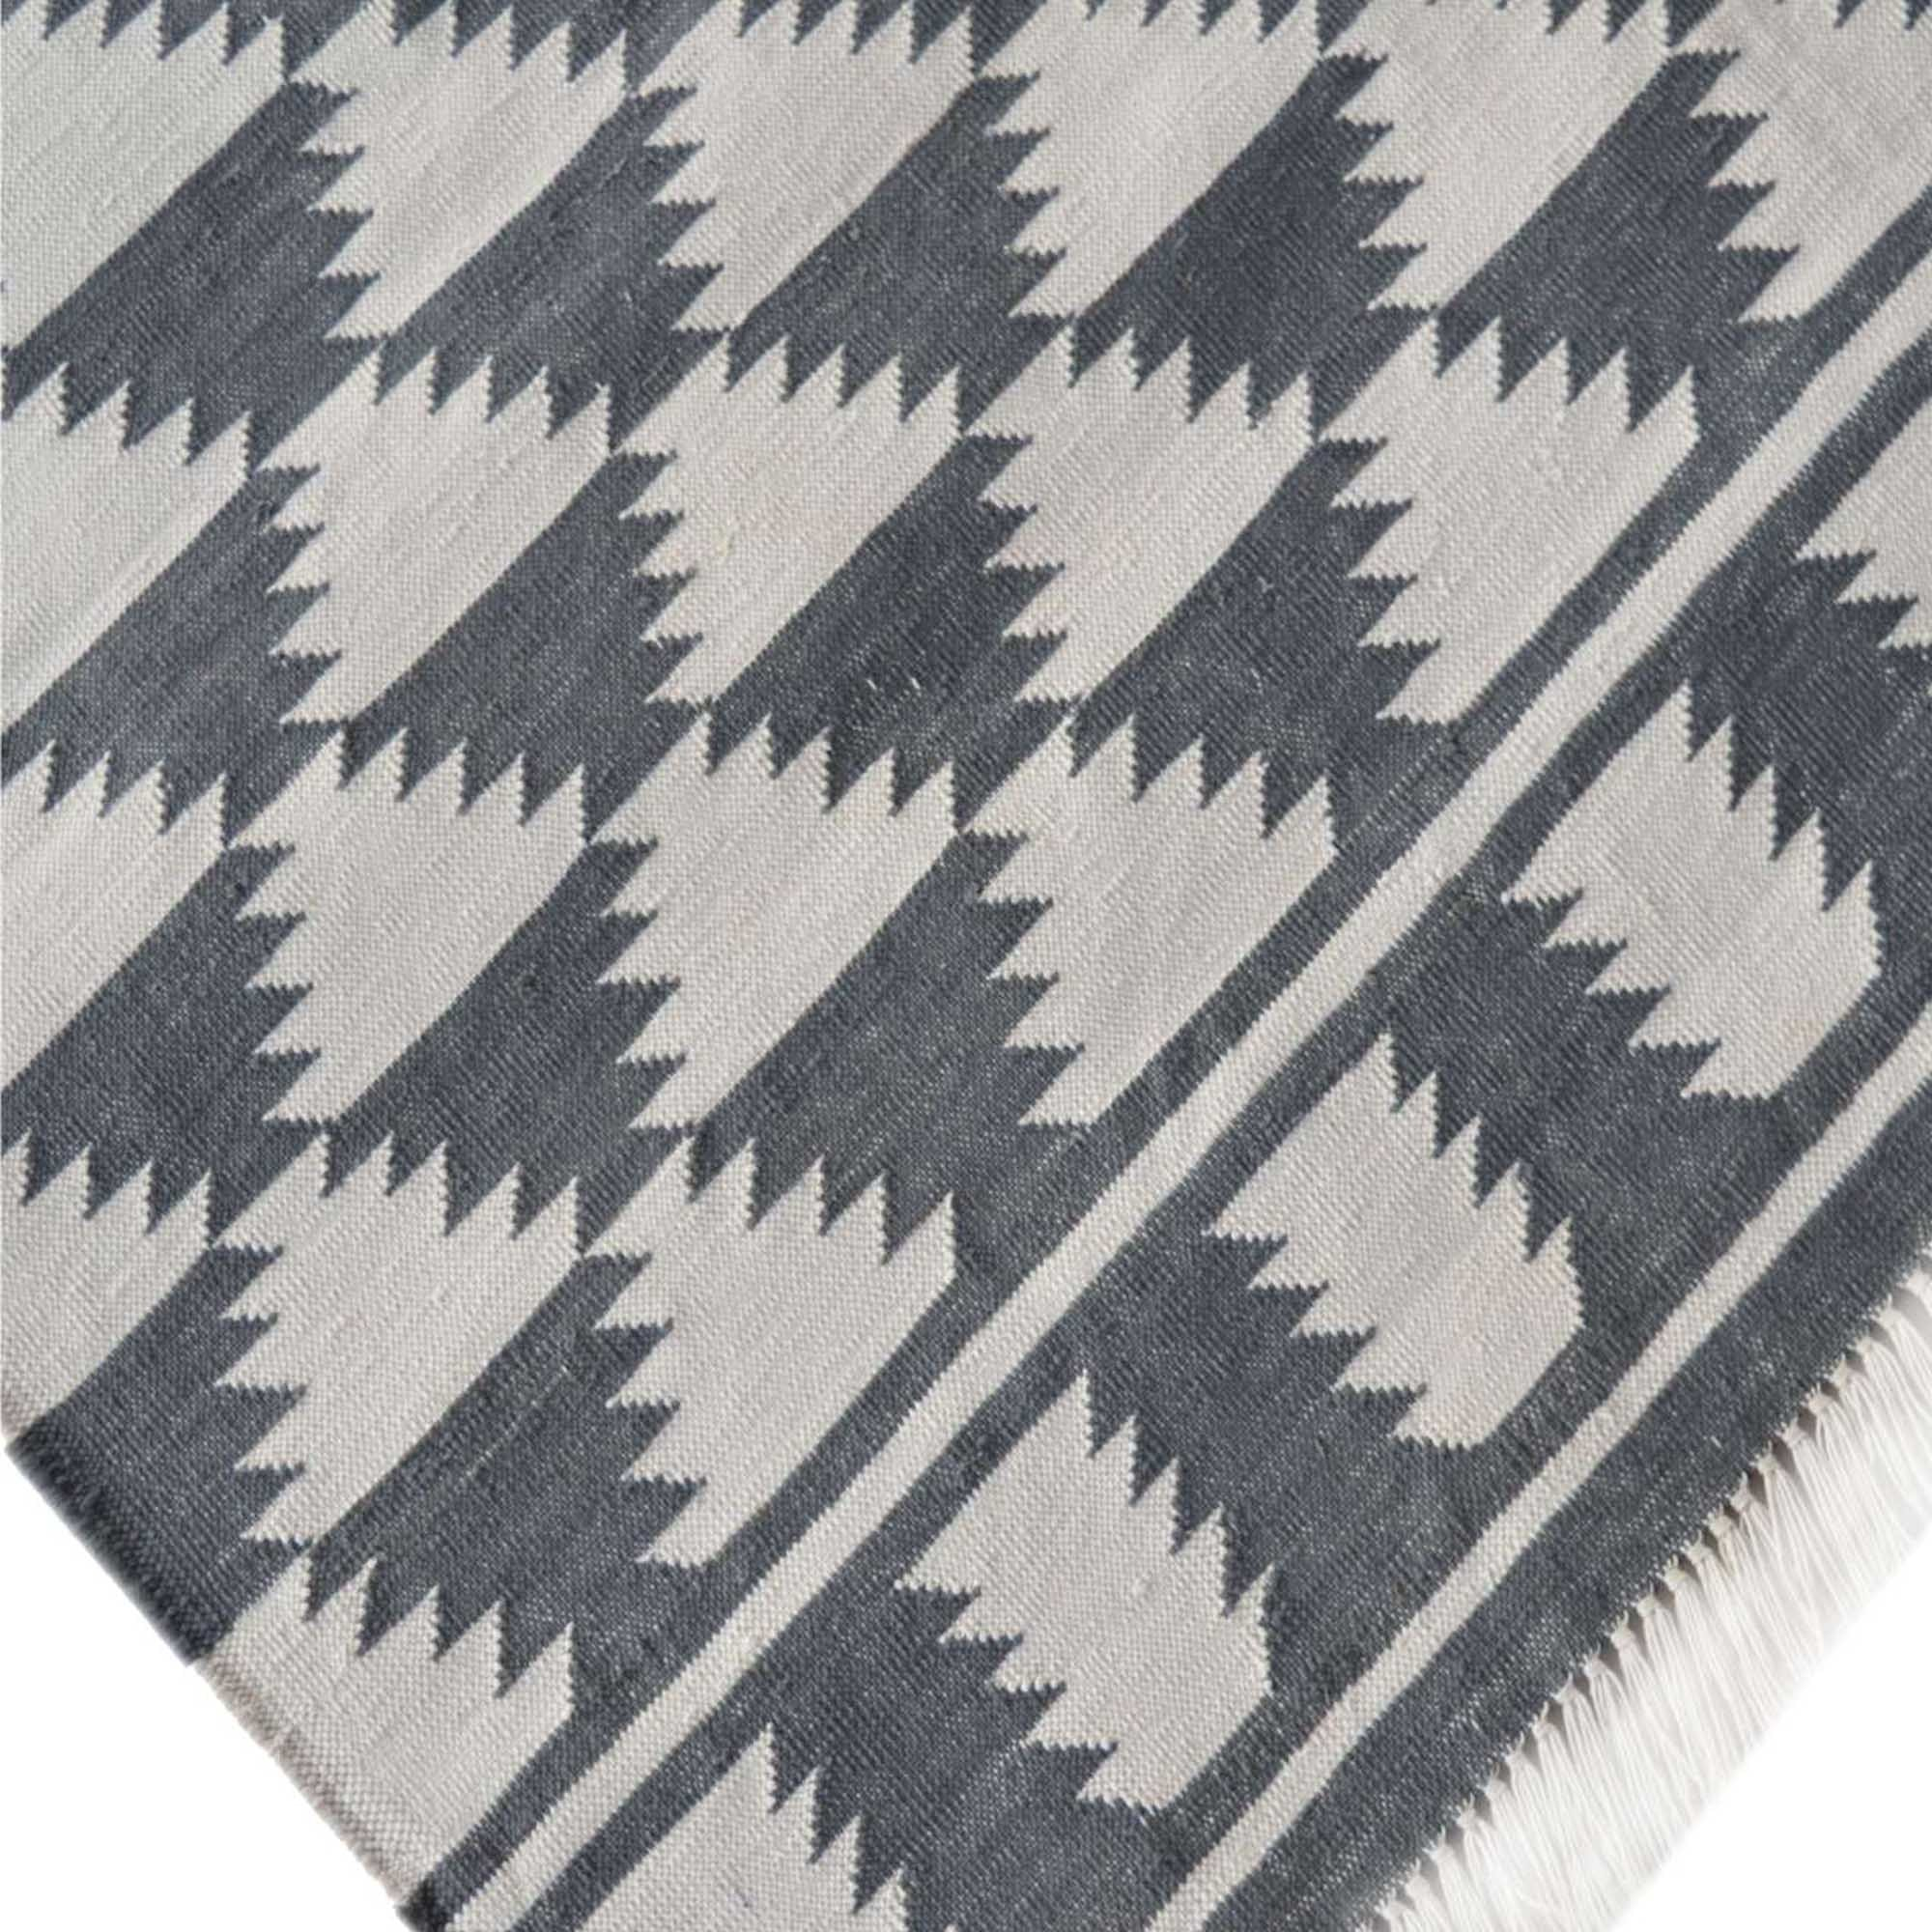 Picture of: Black White Abstract Diamond Pattern Rug Home Accessories Rugs